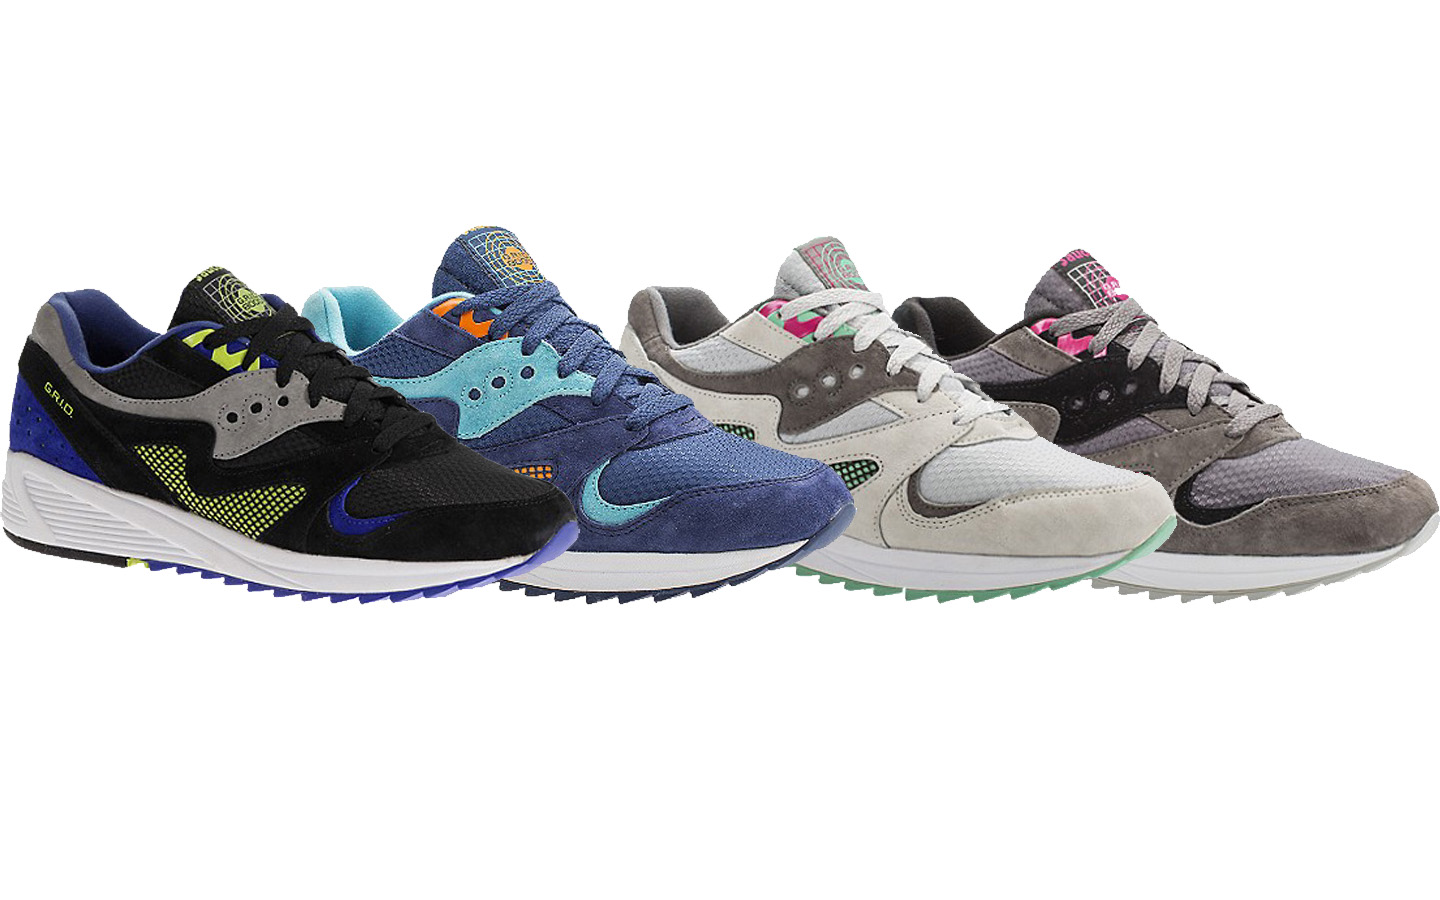 The Saucony GRID 8000 Premium is Available Now is Four Colorways